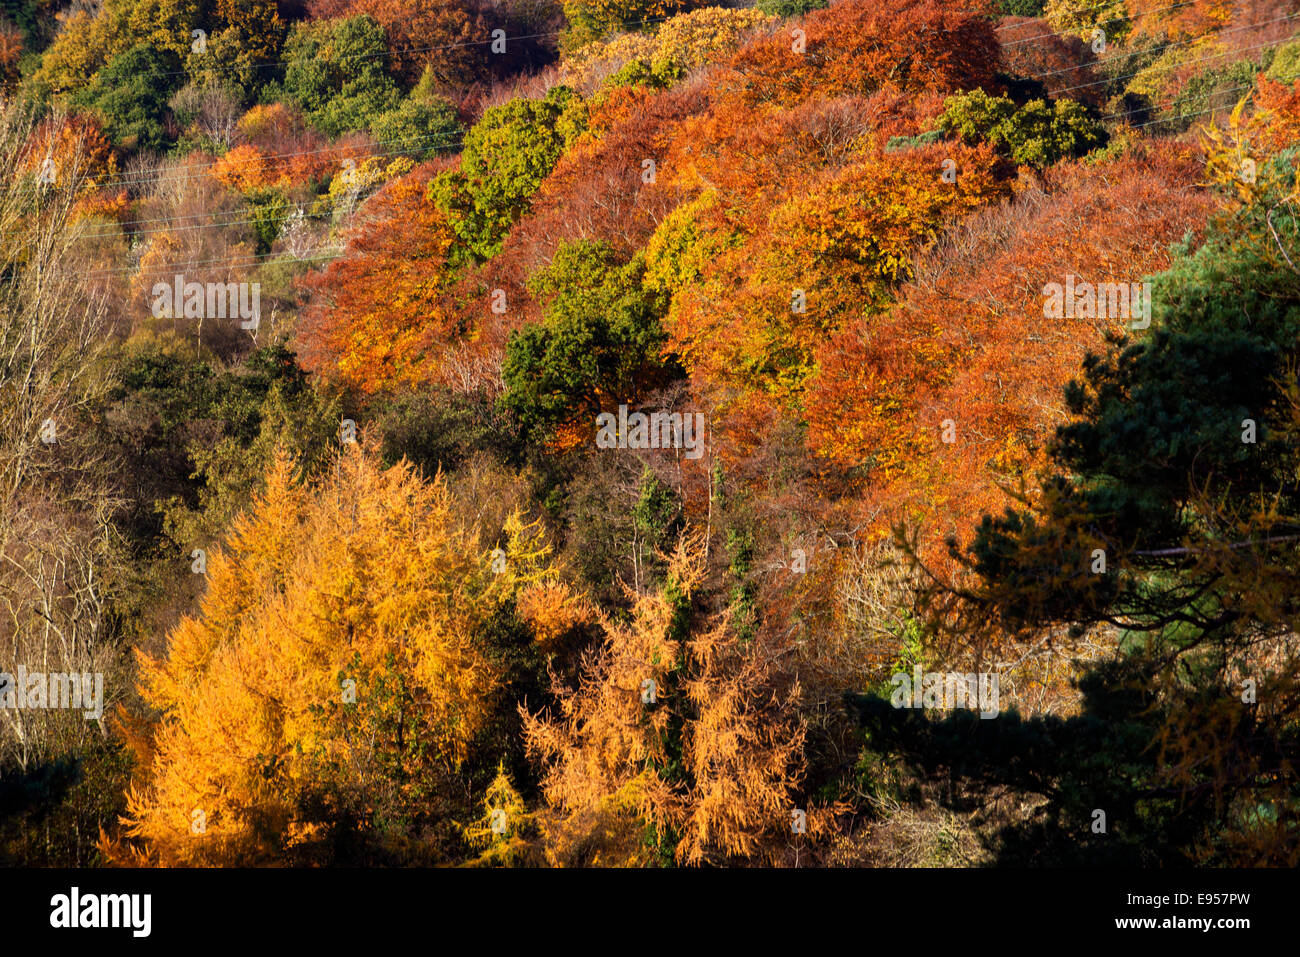 Lagan valley regional park, Belfast, Northern Ireland, autumn, fall, barnets park, Malone house - Stock Image